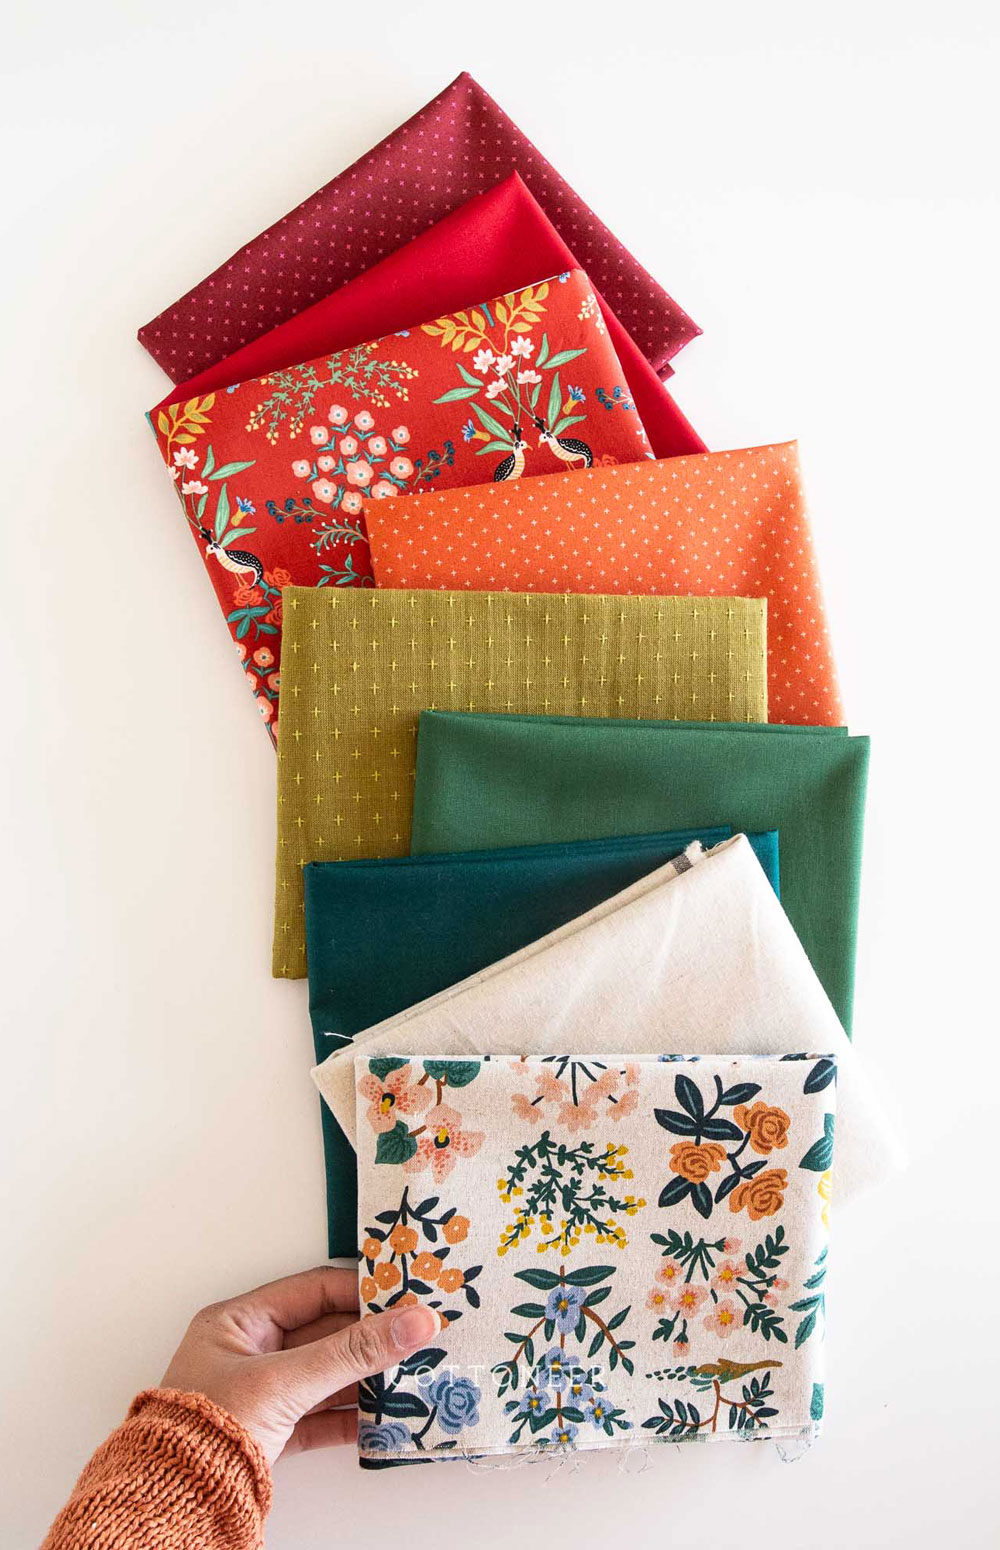 It's easy to get in the holiday spirit and get your Christmas quilting done with a pattern like Hexie Stripe. It's a vintage design with a modern twist! To make a throw all you need are 9 different 1/2 yd. cuts of fabric. Mix red and green solids with some floral prints for a beautifully festive quilt! suzyquilts.com #christmasquilt #christmasfabric